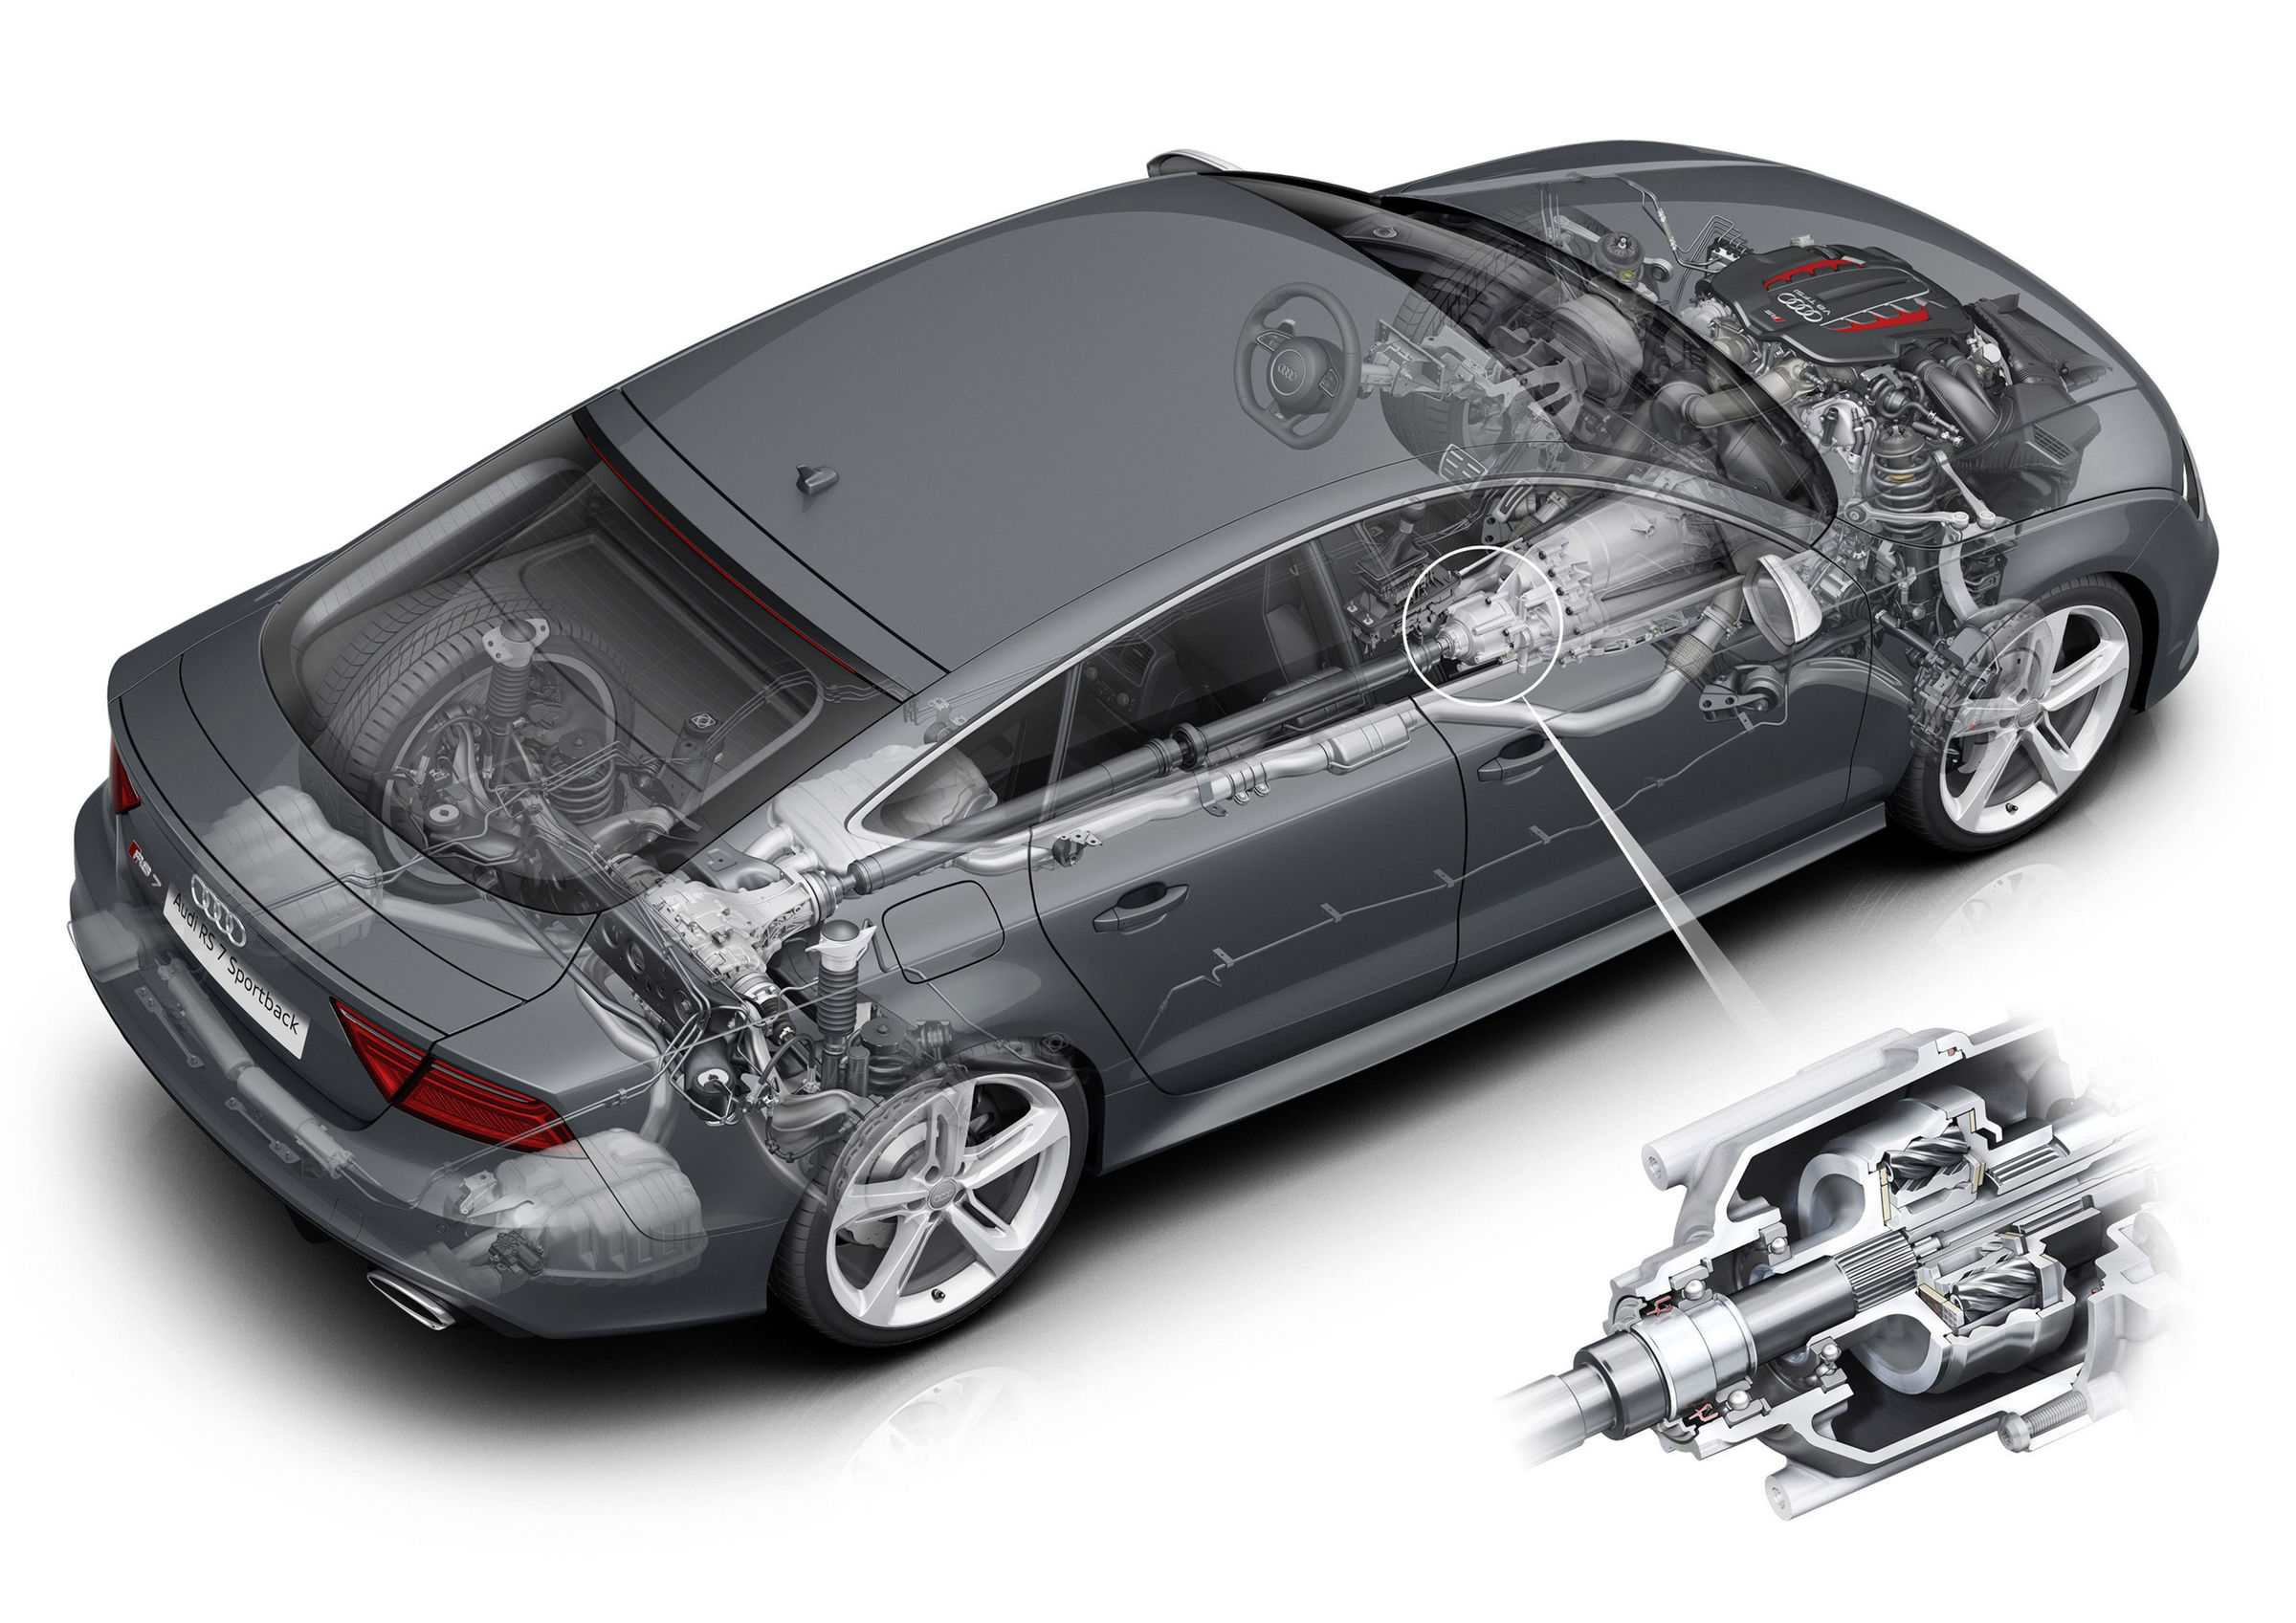 drive system audi mediacenteraudi a8 engine diagram valve motorcycle and car engine scheme 2 [ 2400 x 1697 Pixel ]